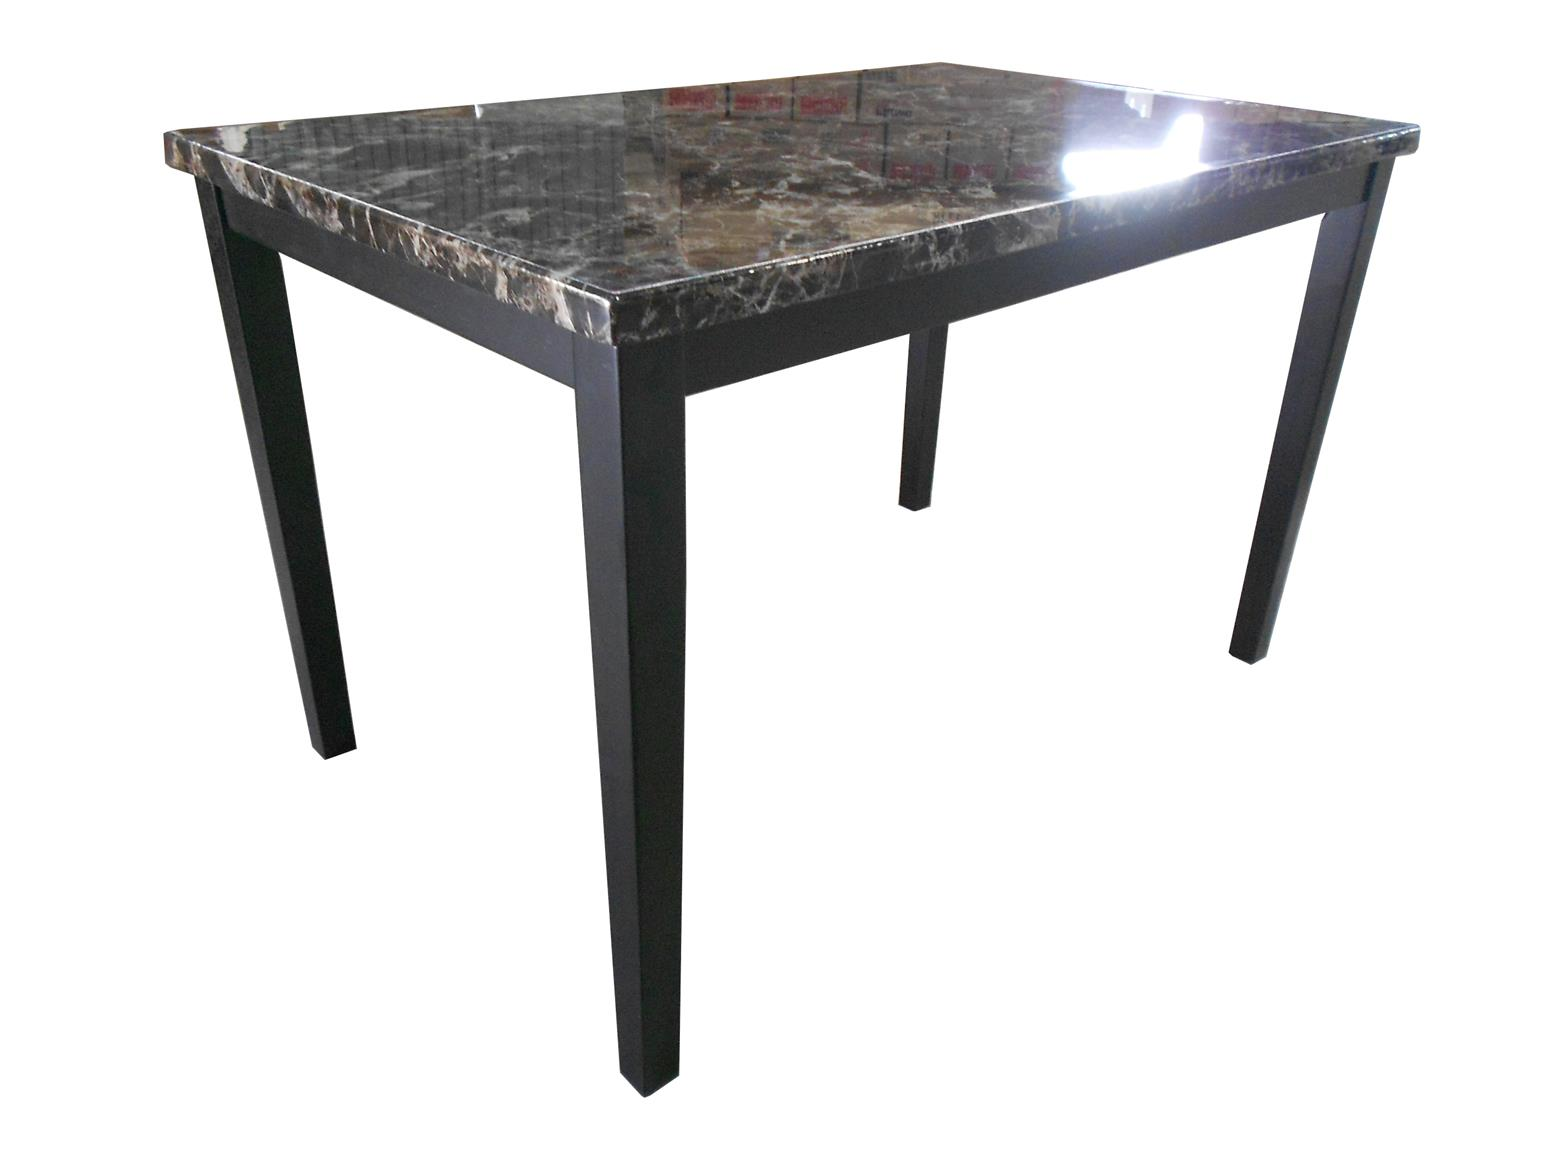 Glory Faux Marble Dining Table end 3282017 1215 PM : glory faux marble dining table gloryforever 1603 28 GloryForever2 from www.lelong.com.my size 1555 x 1166 jpeg 78kB